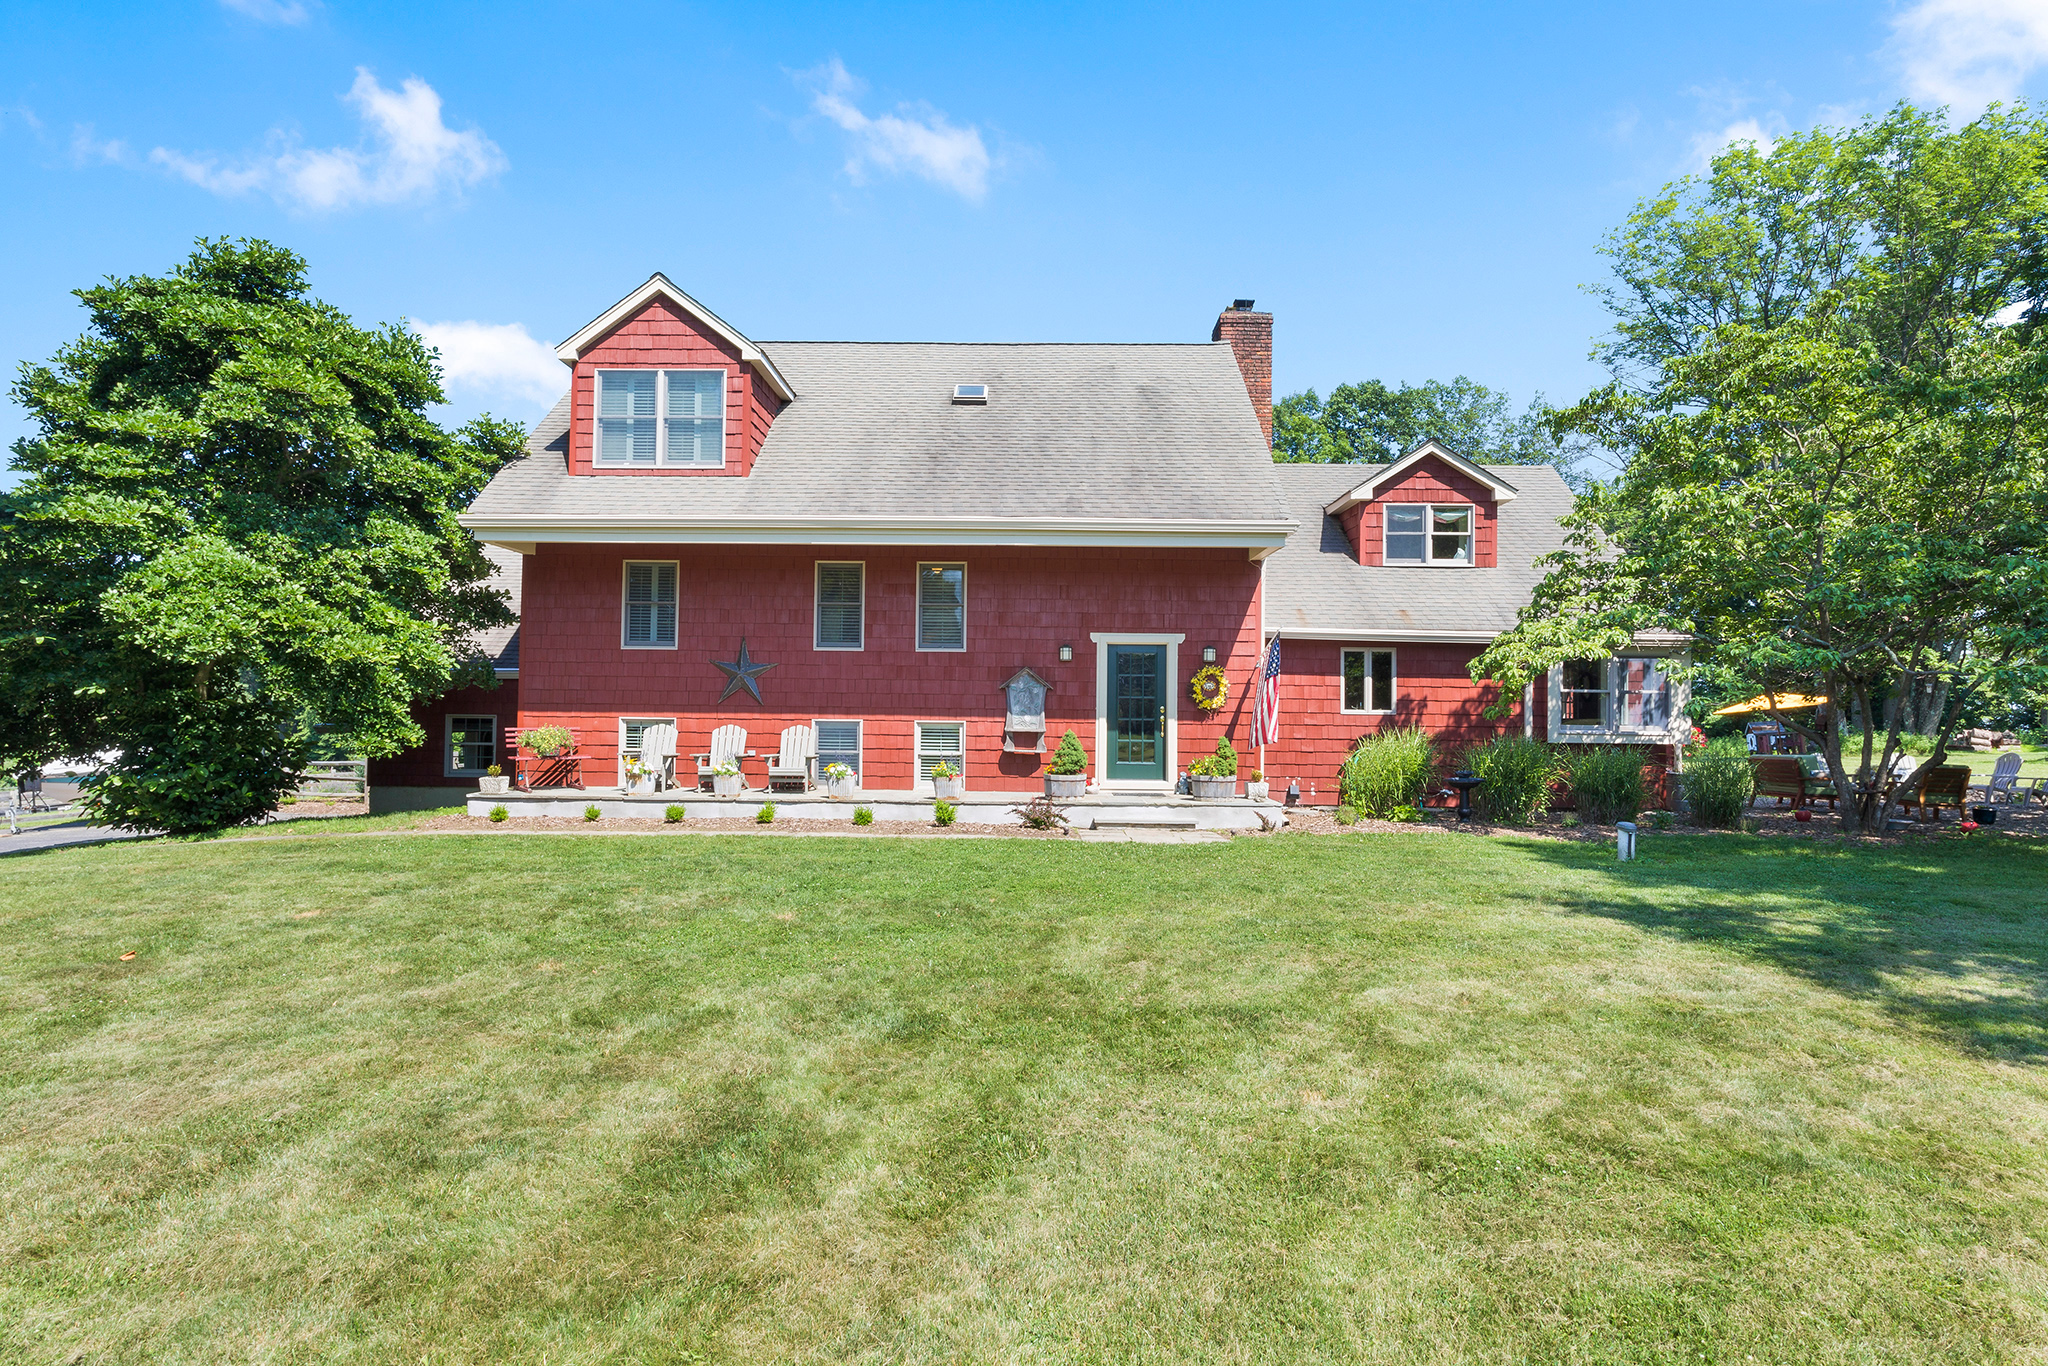 20 7 Scarlet Oak Road Tewksury Township — Front View 2